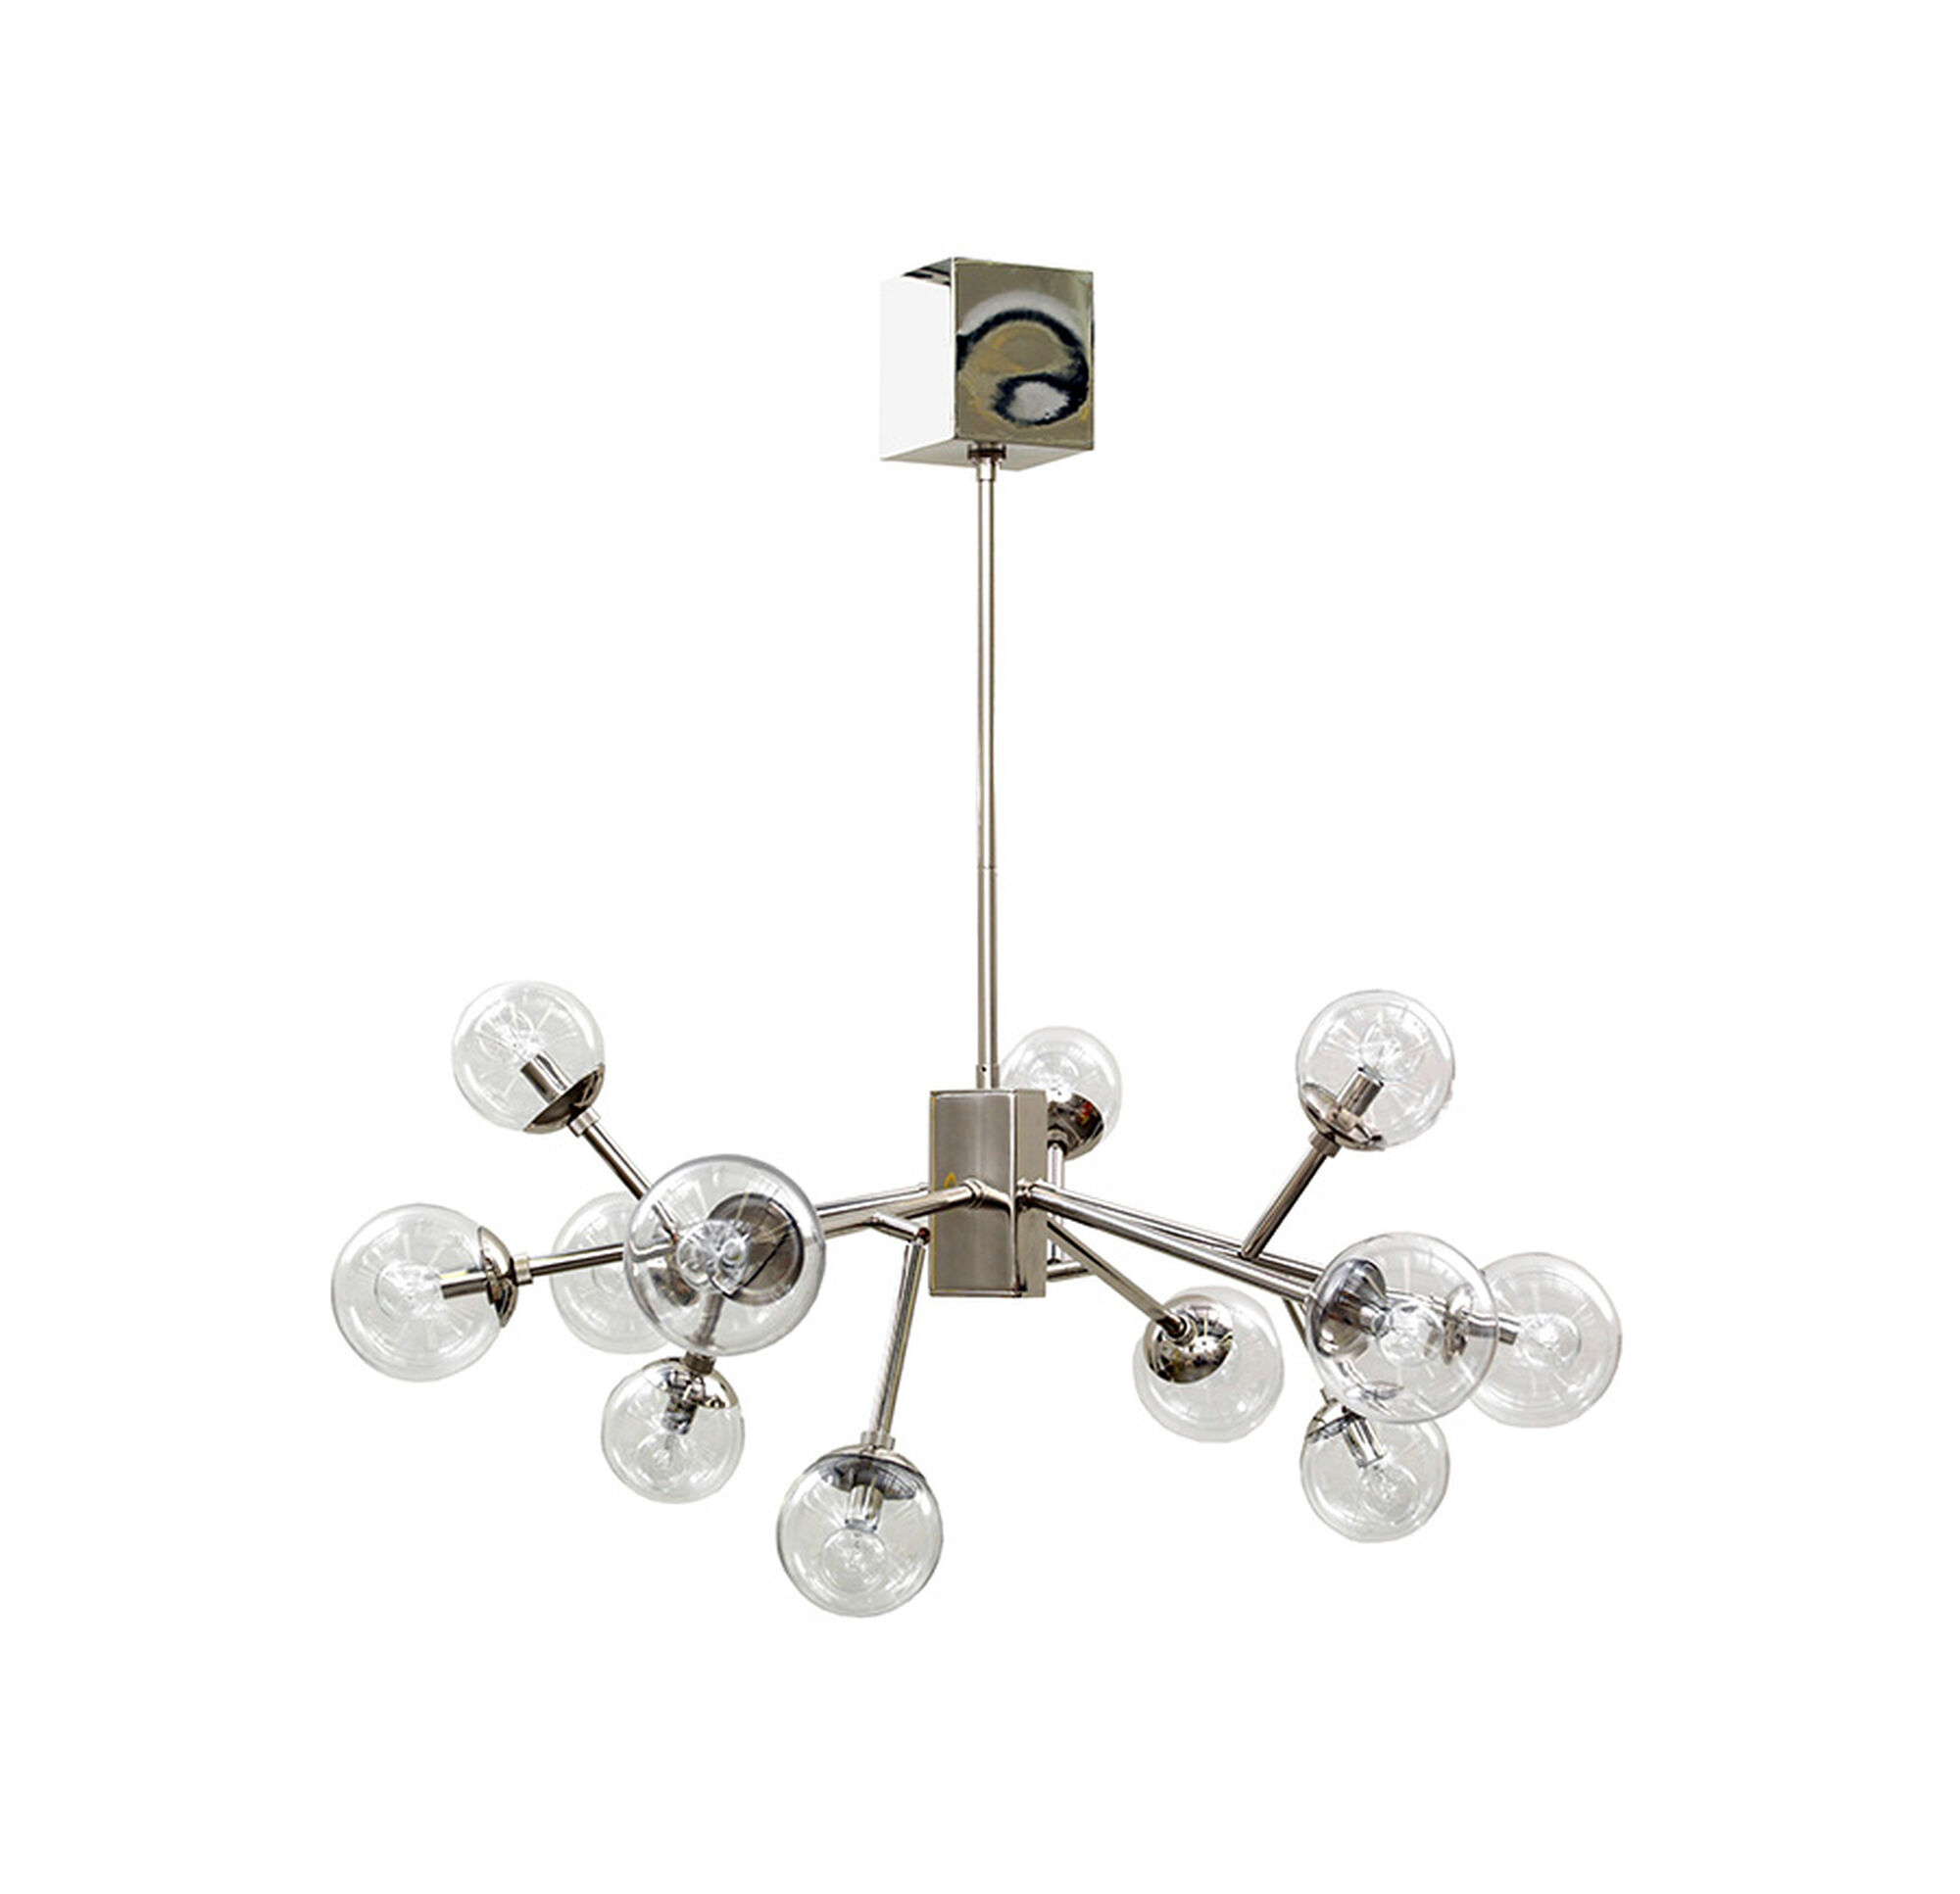 lighting fairmont w nickel p in light polished chandelier maxim